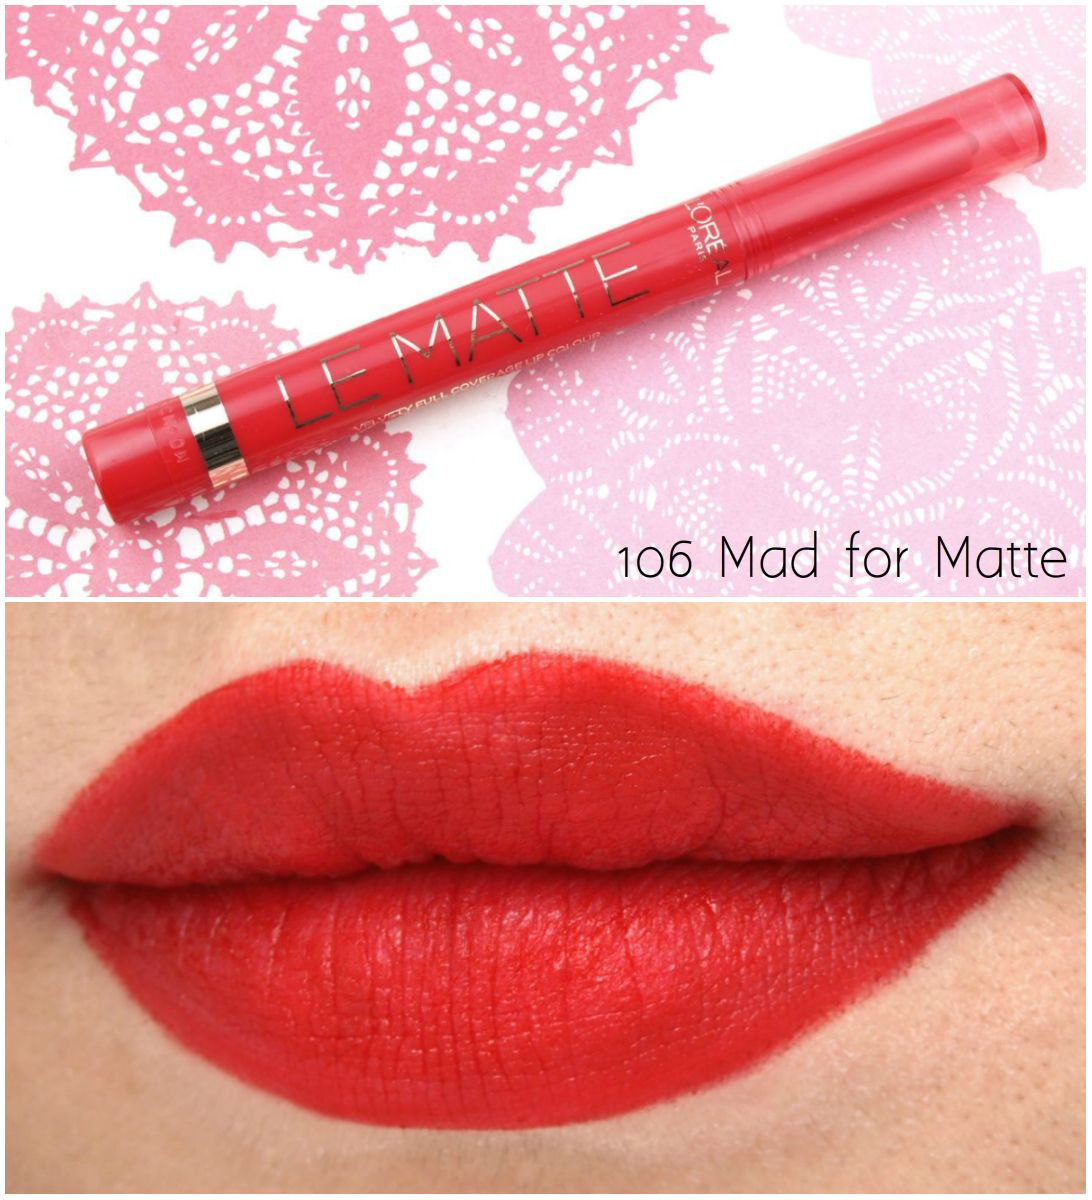 Loreal color caresse by color rich lipstick - L Oreal Le Matte Full Coverage Lip Color In 106 Mad For